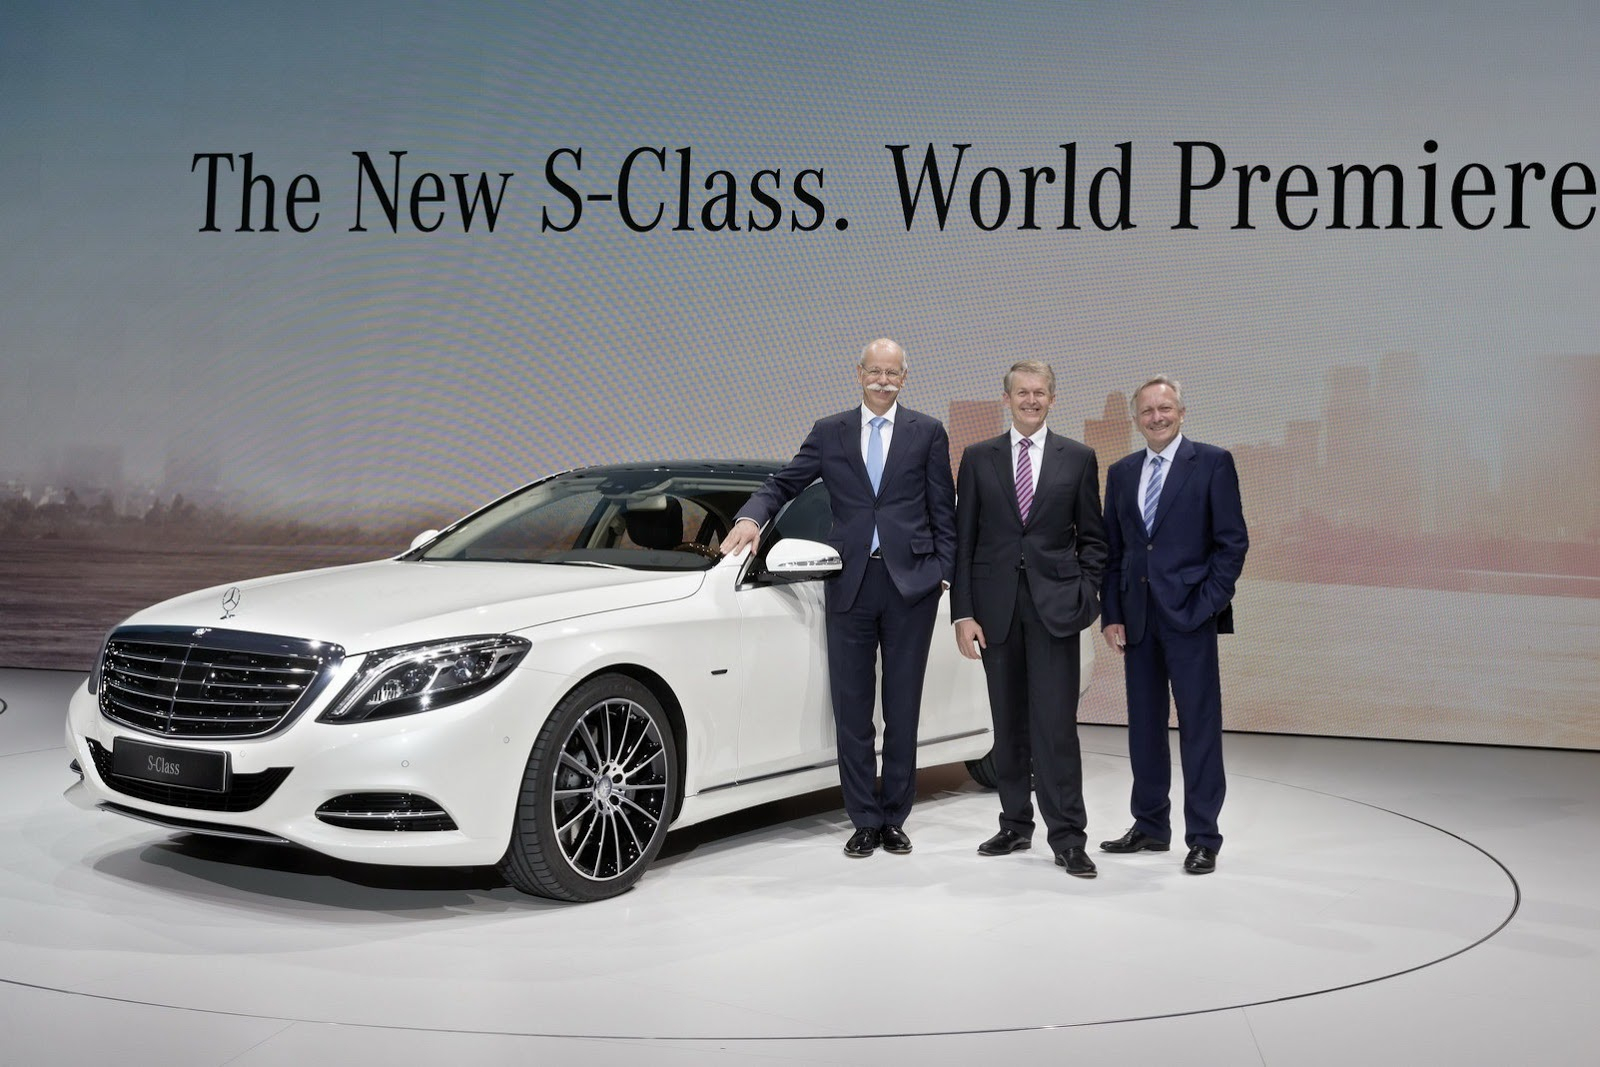 2014 Mercedes Benz S-Class Reveal Event - SMADE MEDIA (1)